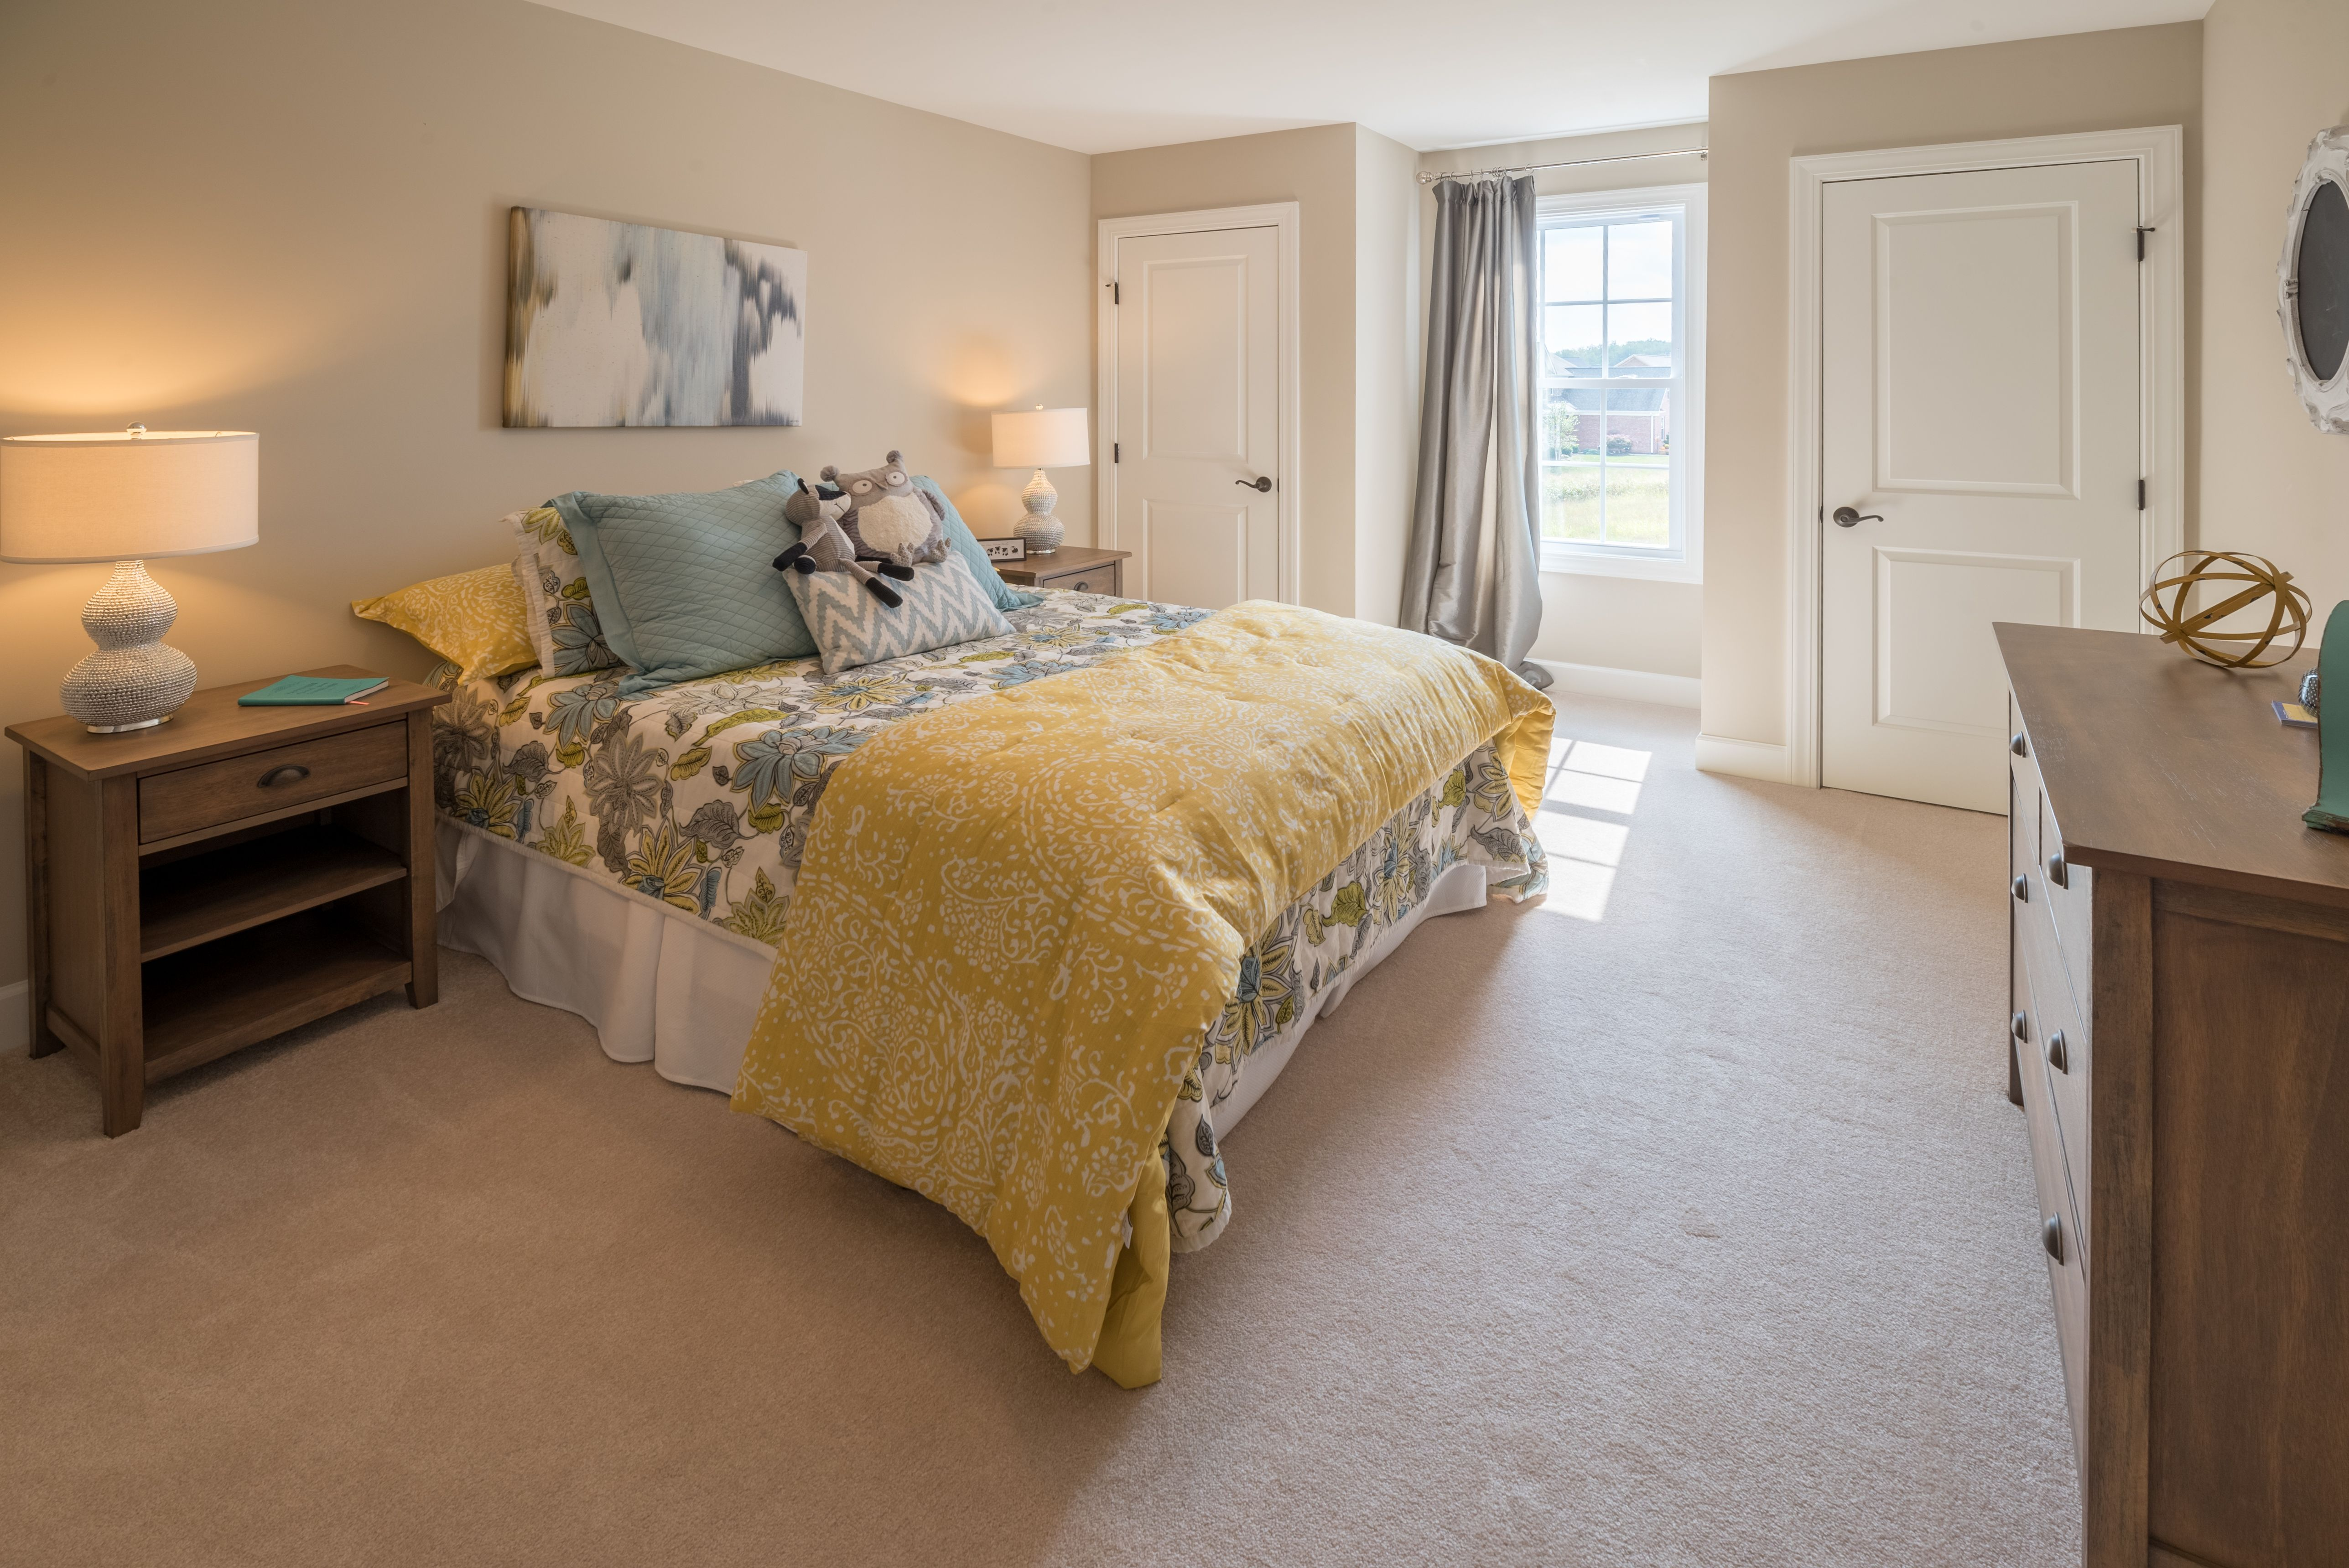 Bedroom featured in The Chesapeake By Stateson Homes in Blacksburg, VA